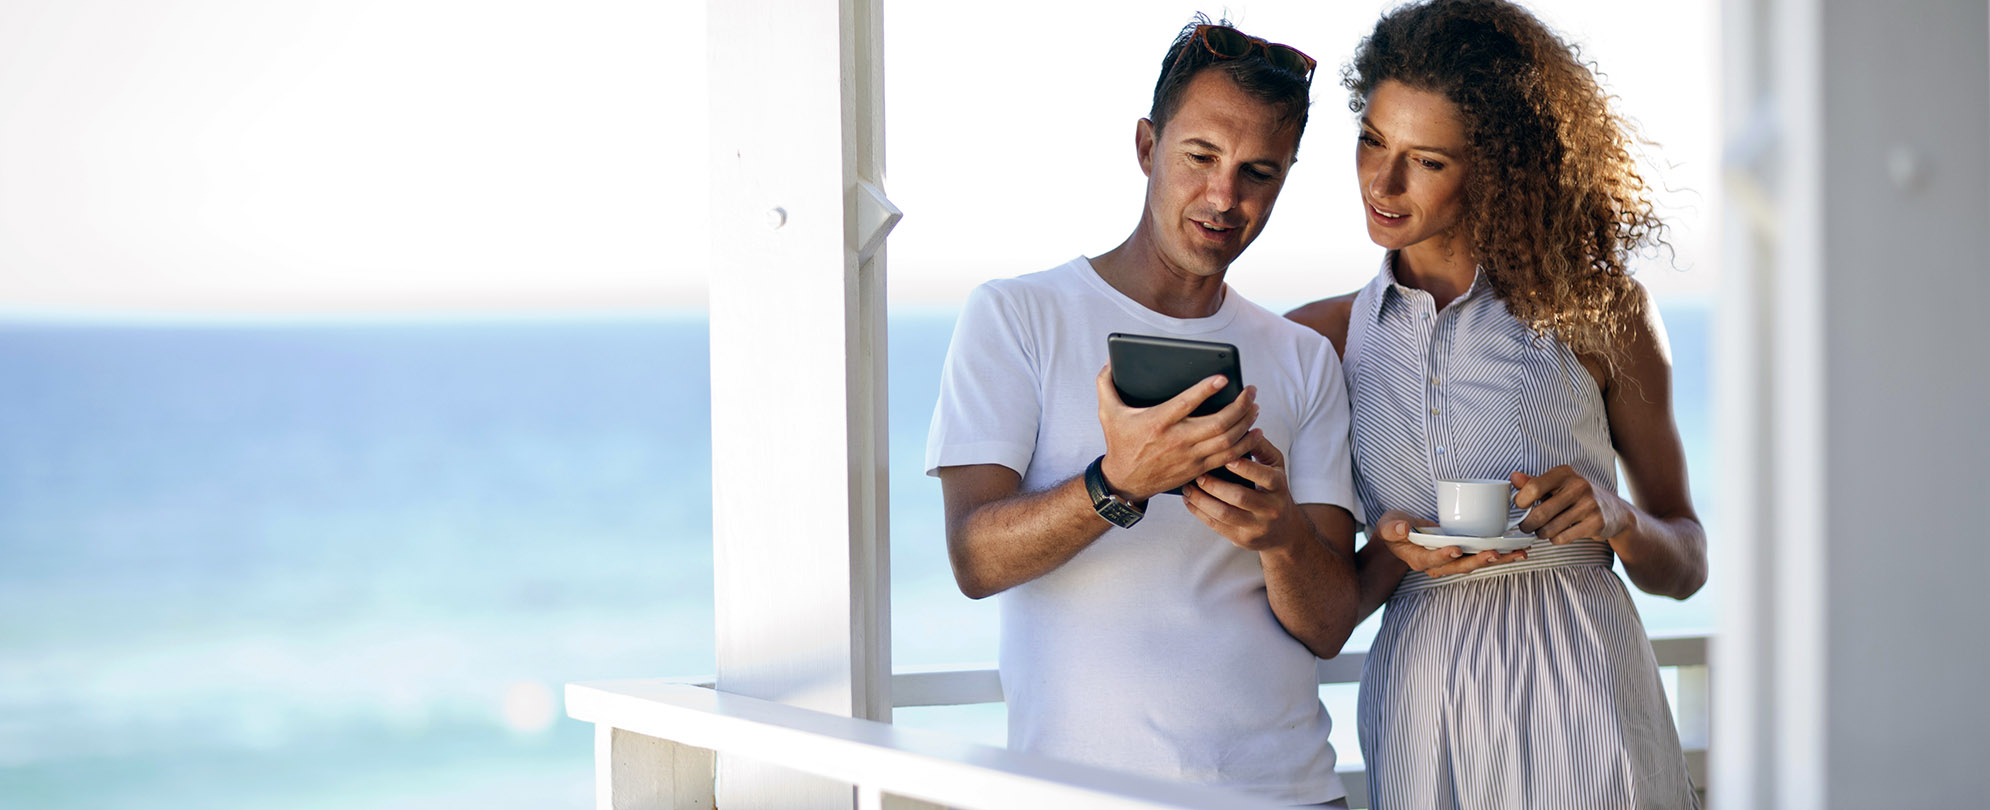 Couple having their morning coffee on a balcony overlooking the ocean while reviewing documents on an iPad